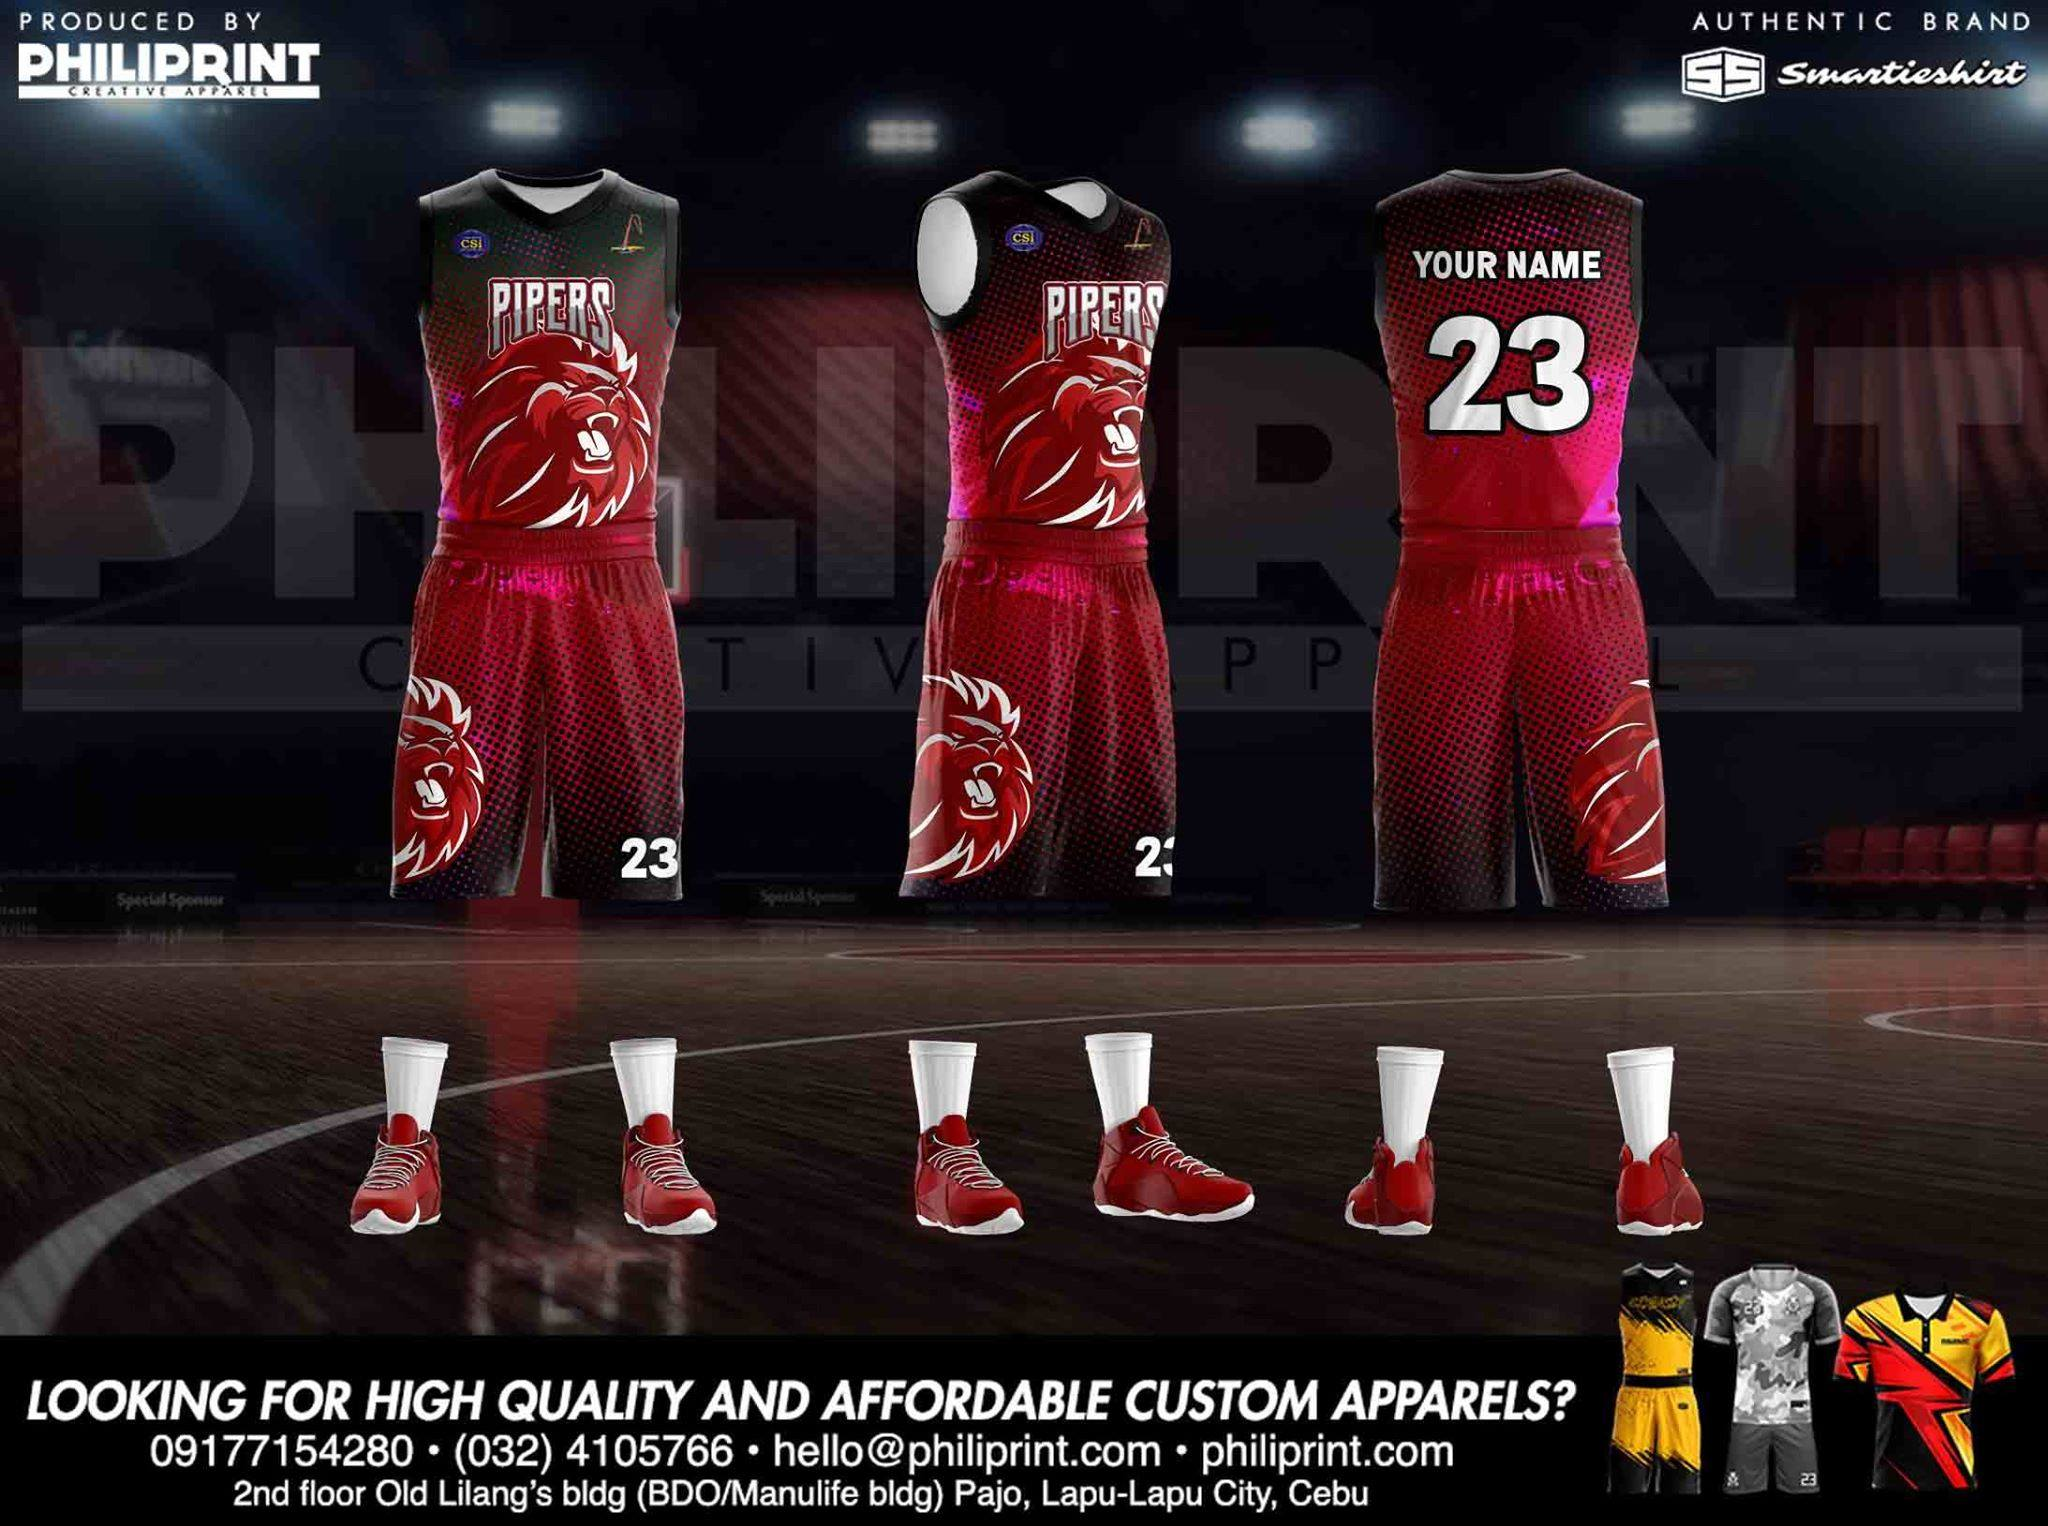 Philiprint Basketball Jersey Full Sublimation PIPERS